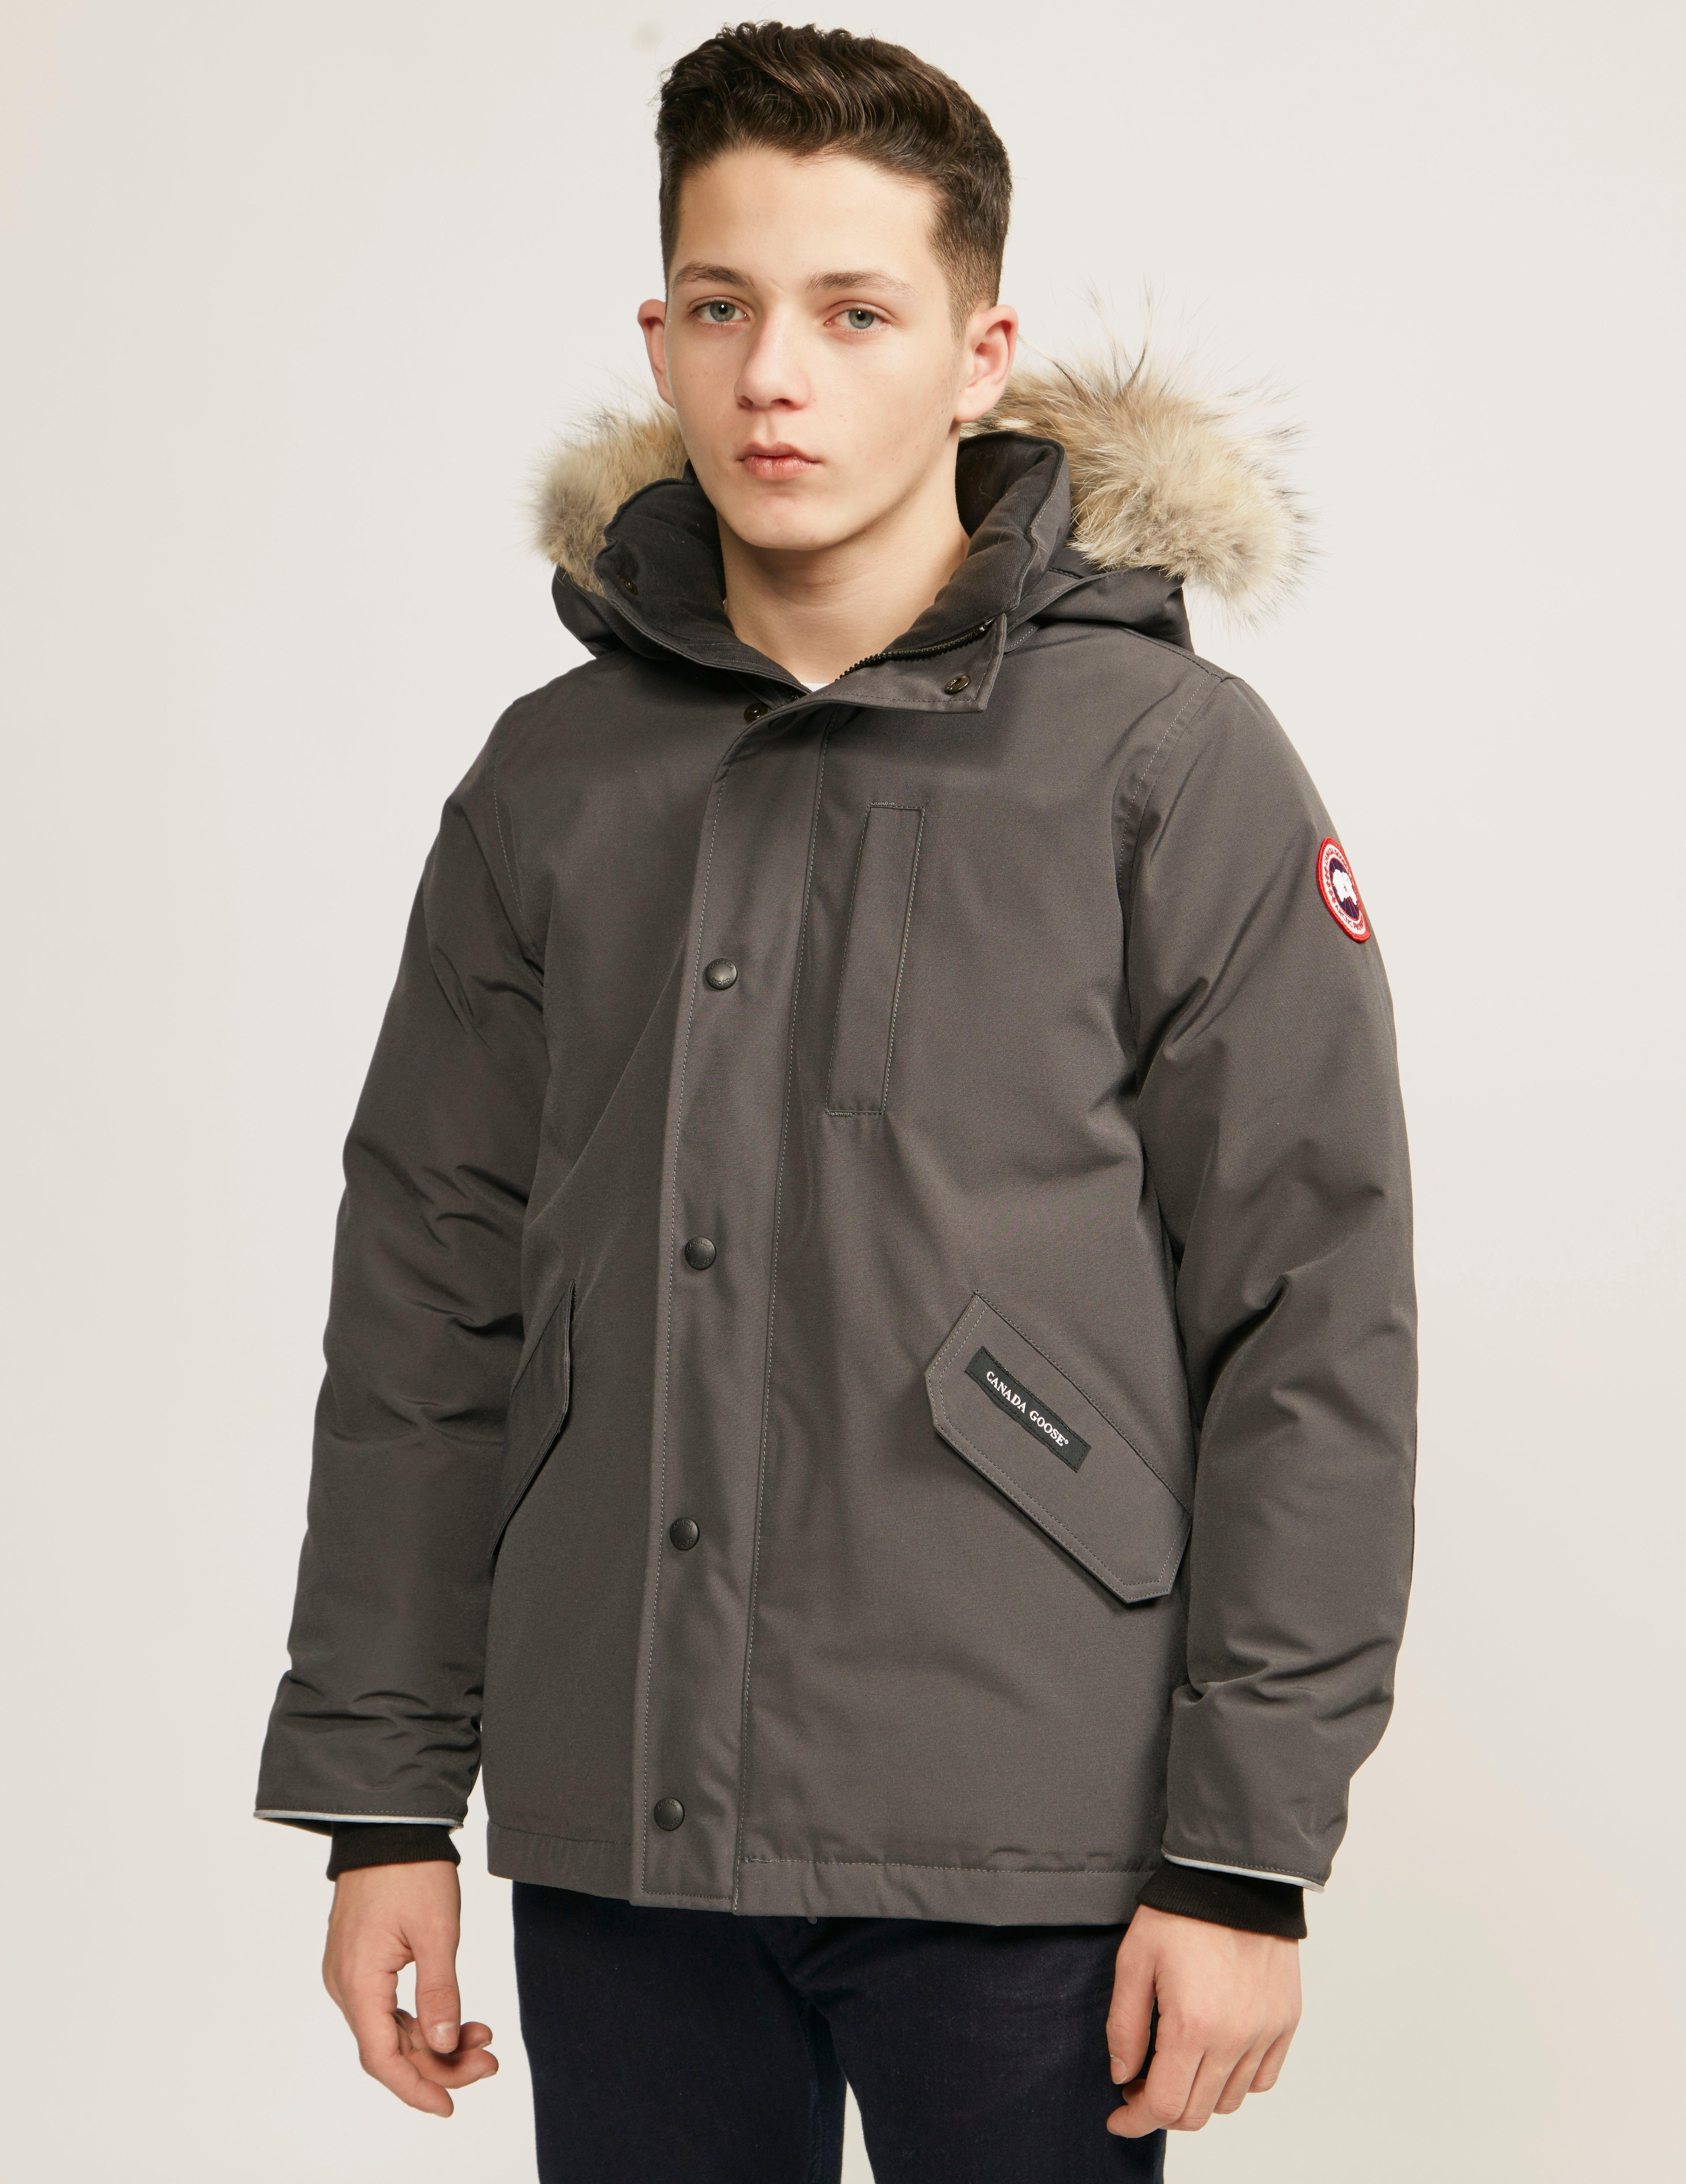 junior canada canada goose goose canada junior junior coat junior goose  coat coat a47SSn eaa1a1ba75a3